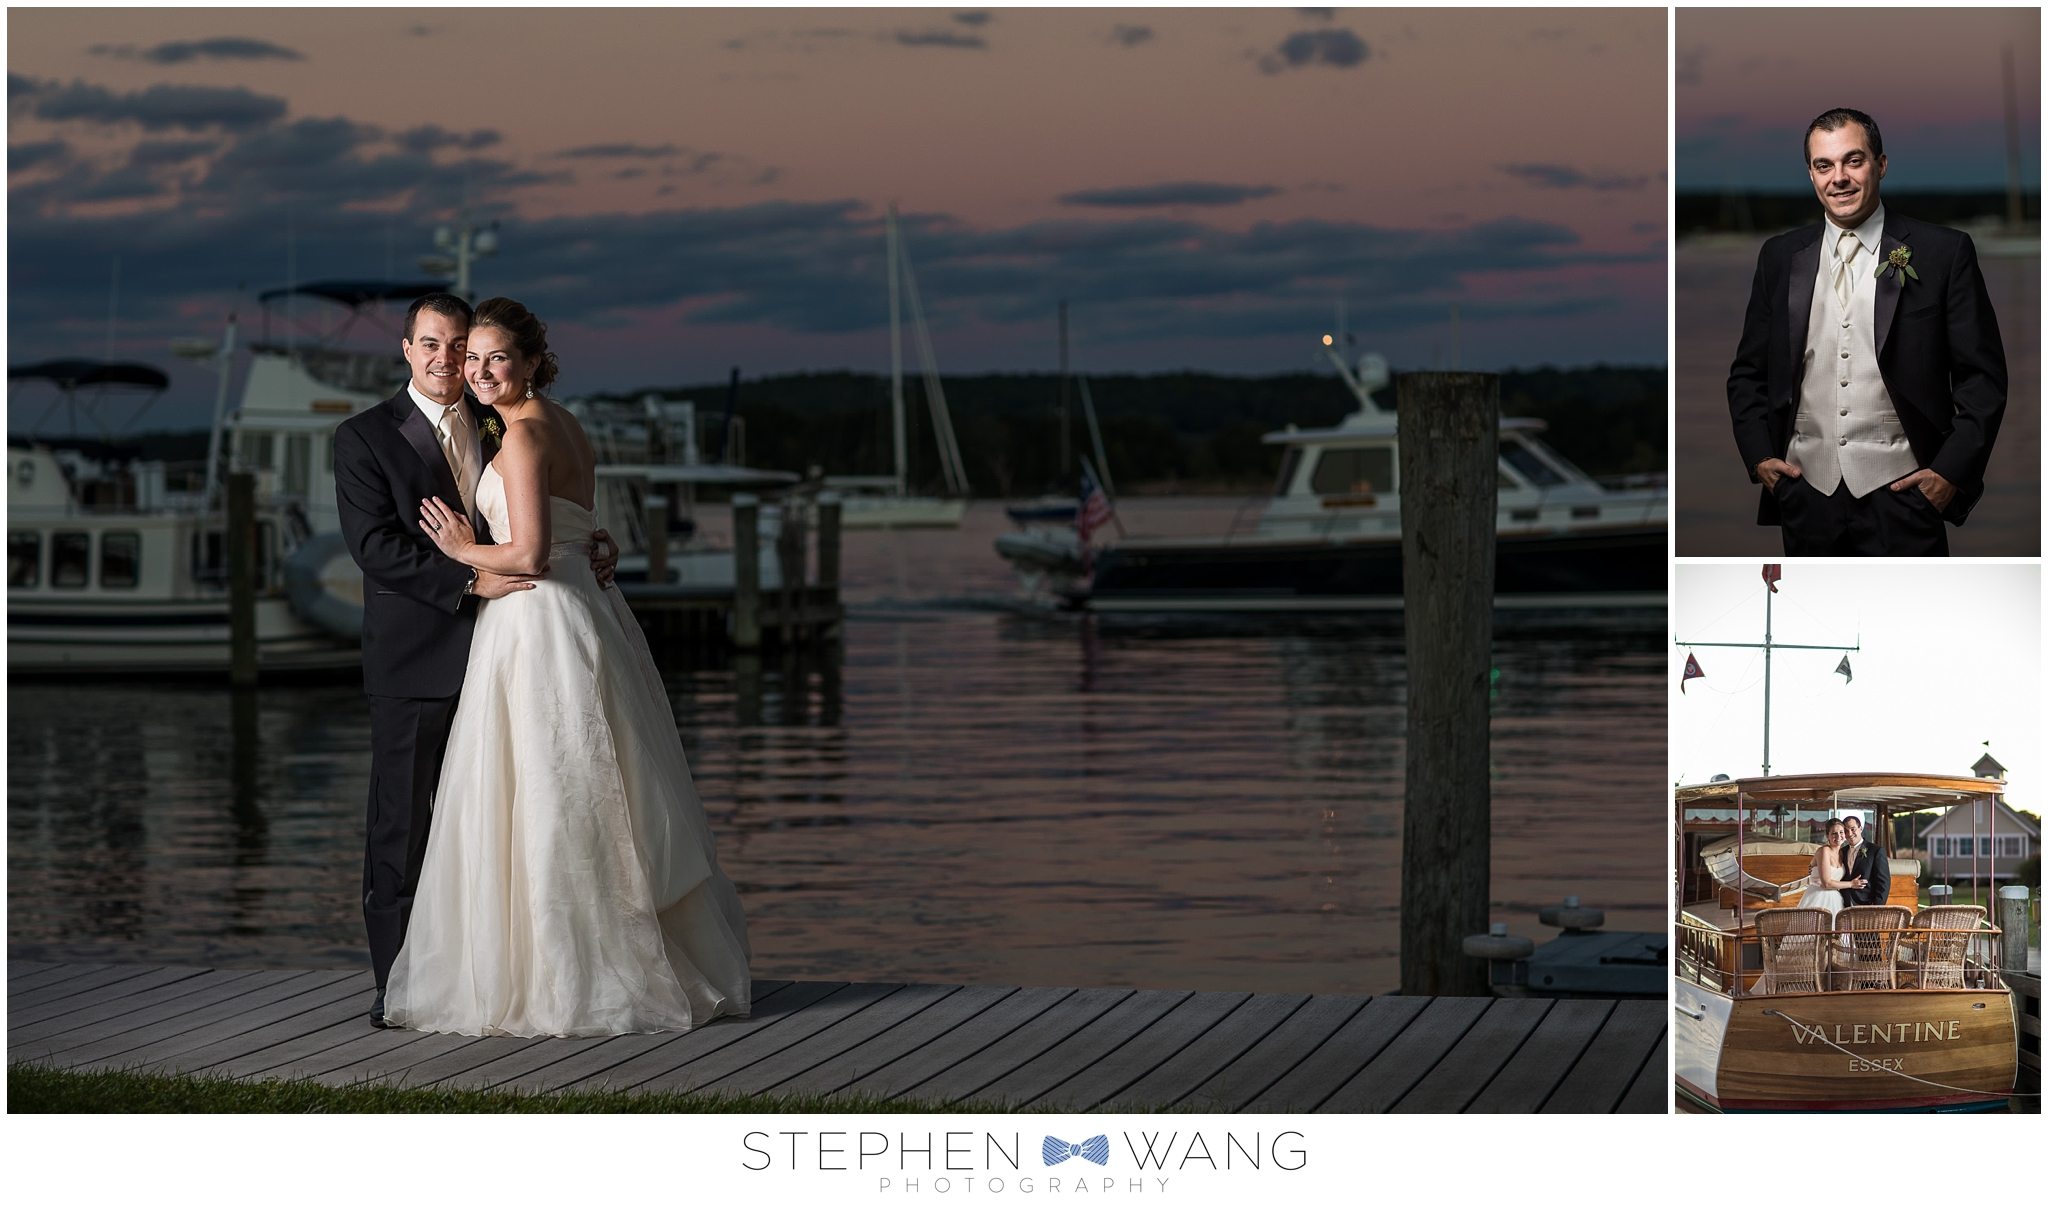 Stephen Wang Photography wedding photographer essex connecticut wedding connecticut photographer philadlephia photographer pennsylvania wedding photographer bride and groom essex yacht club nautical wedding00029.jpg